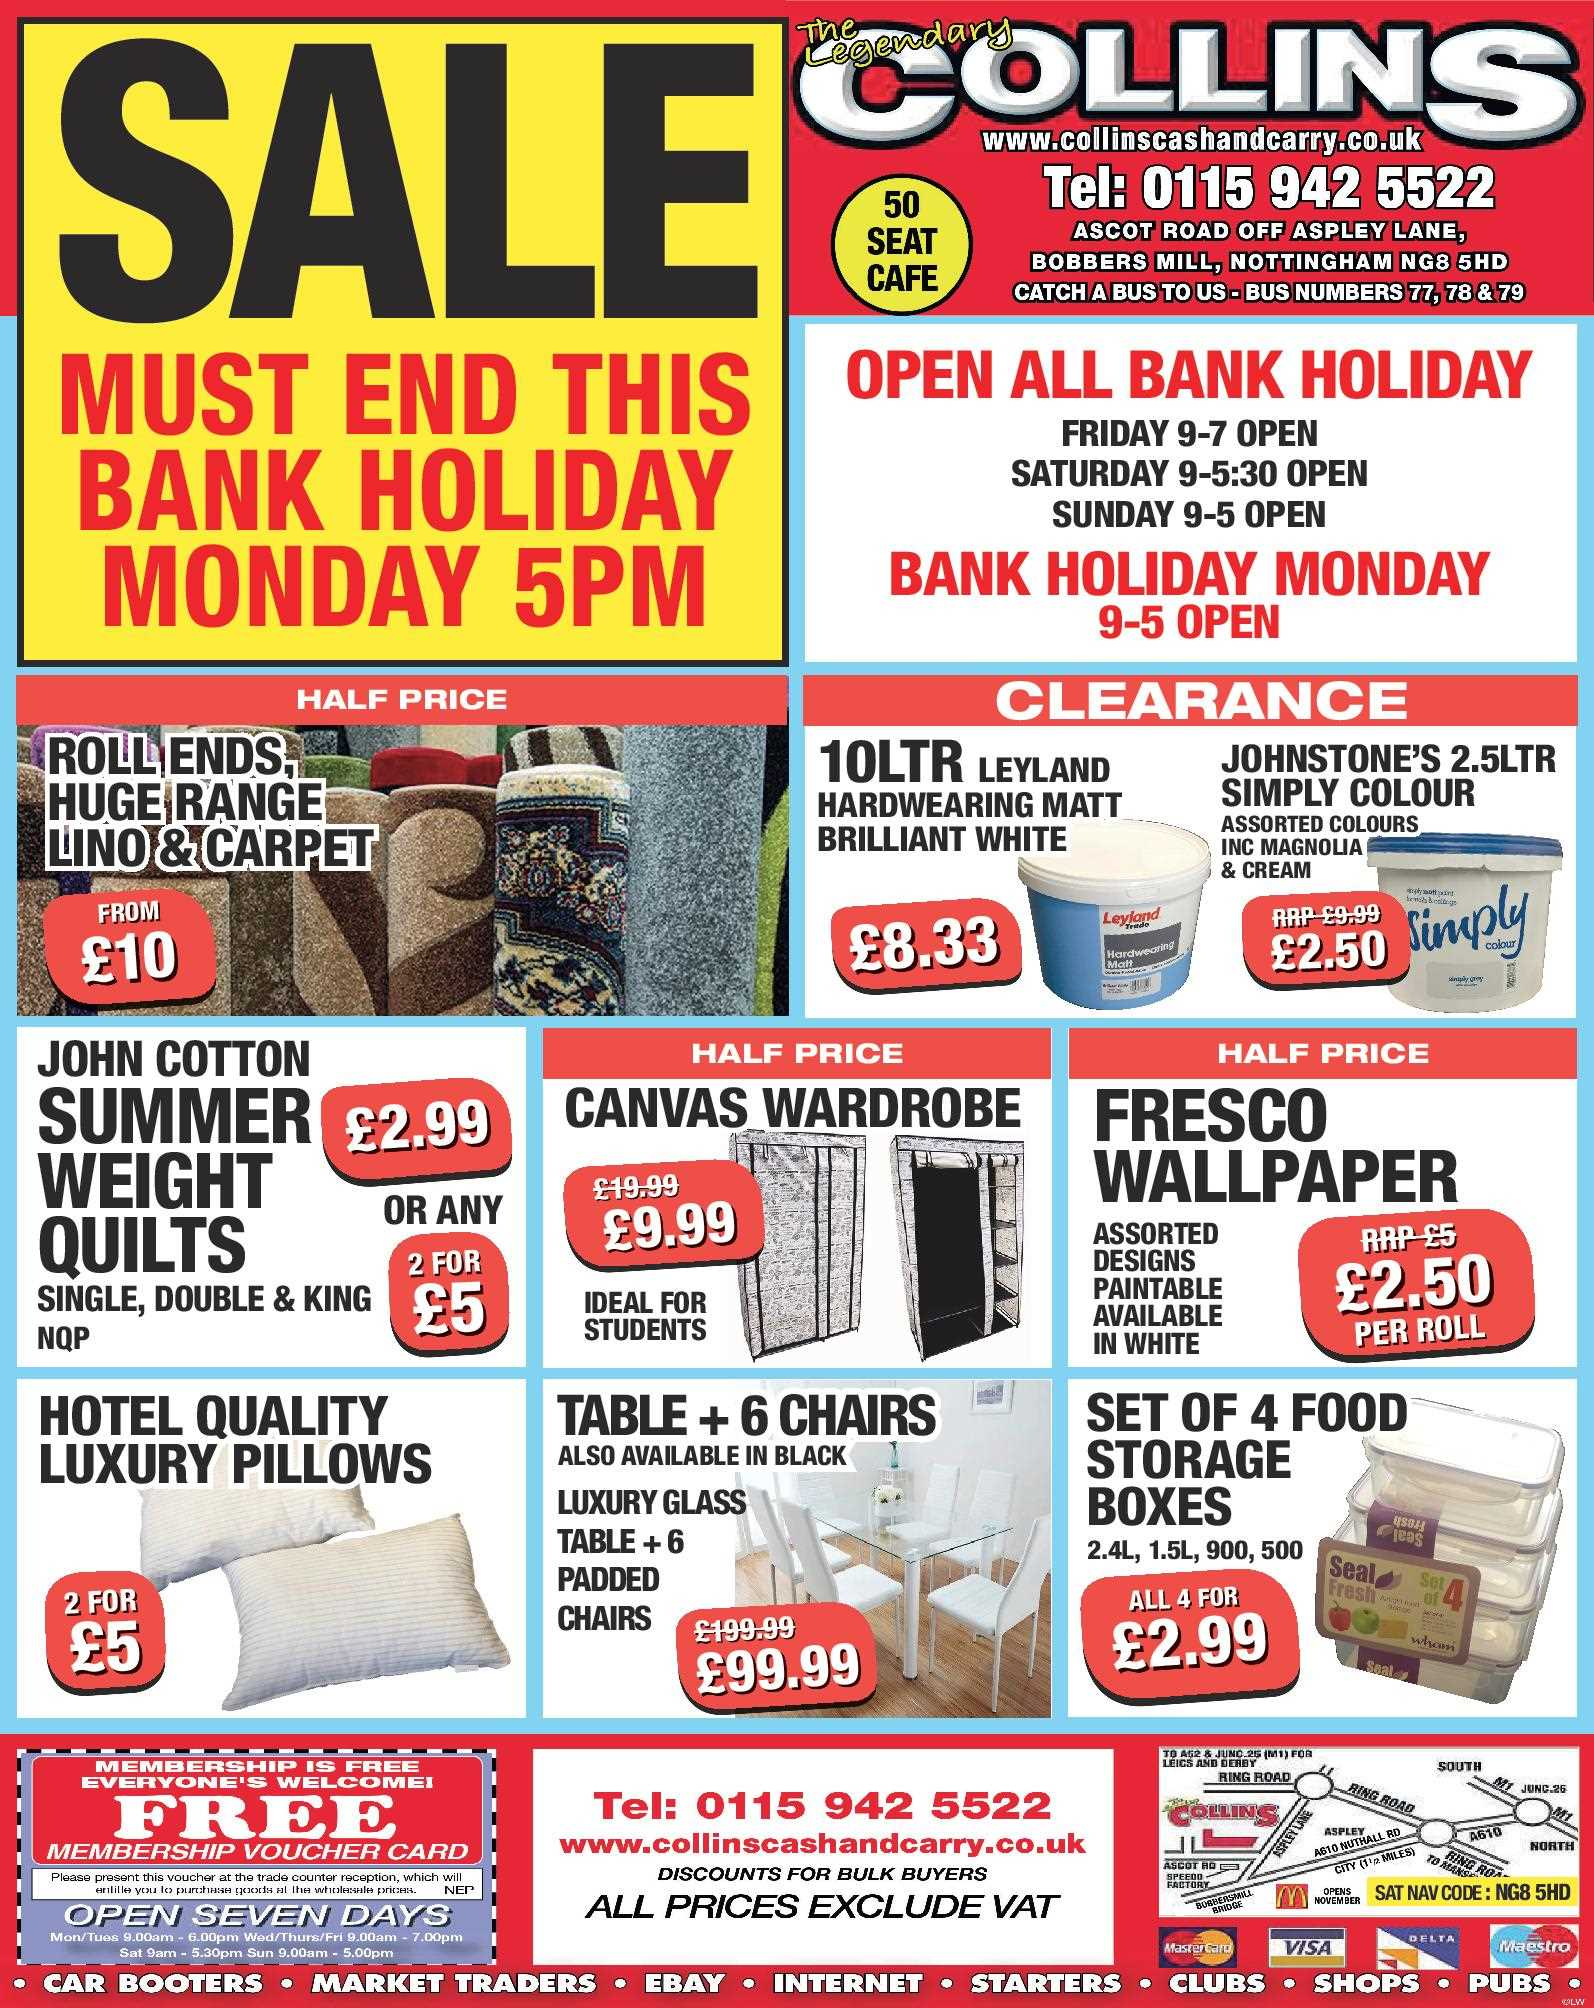 New Deals and Opening Times for the Bank Holiday Collins Cash and Carry